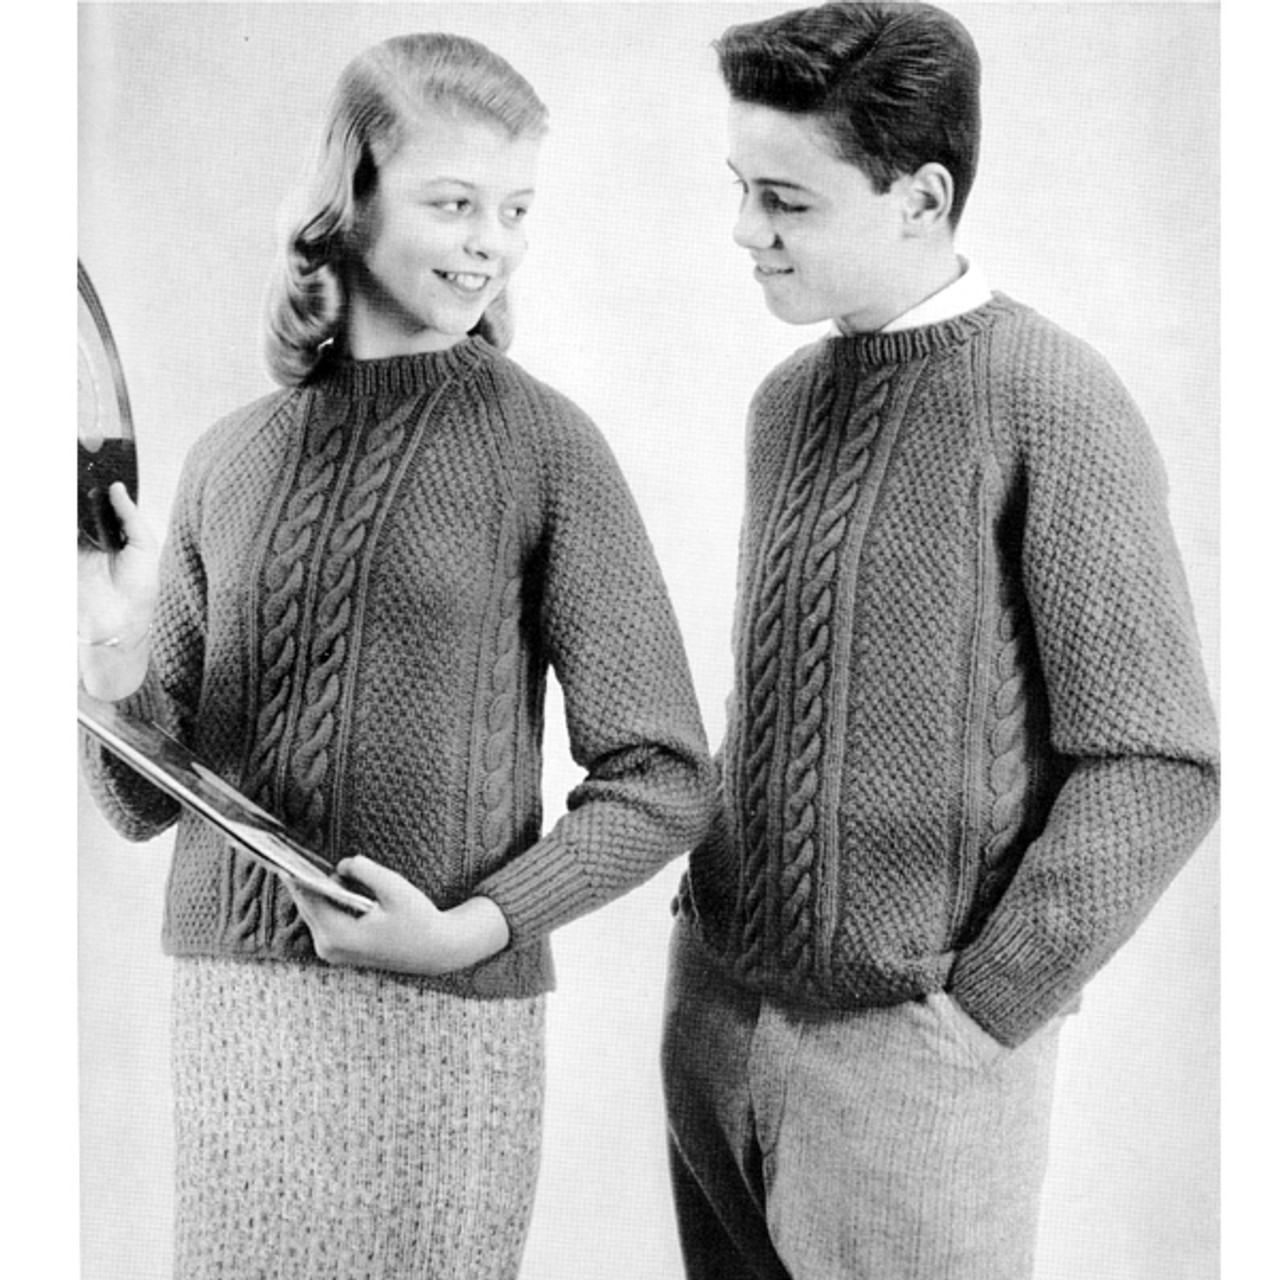 Teens Cable Sweater Knitting Pattern